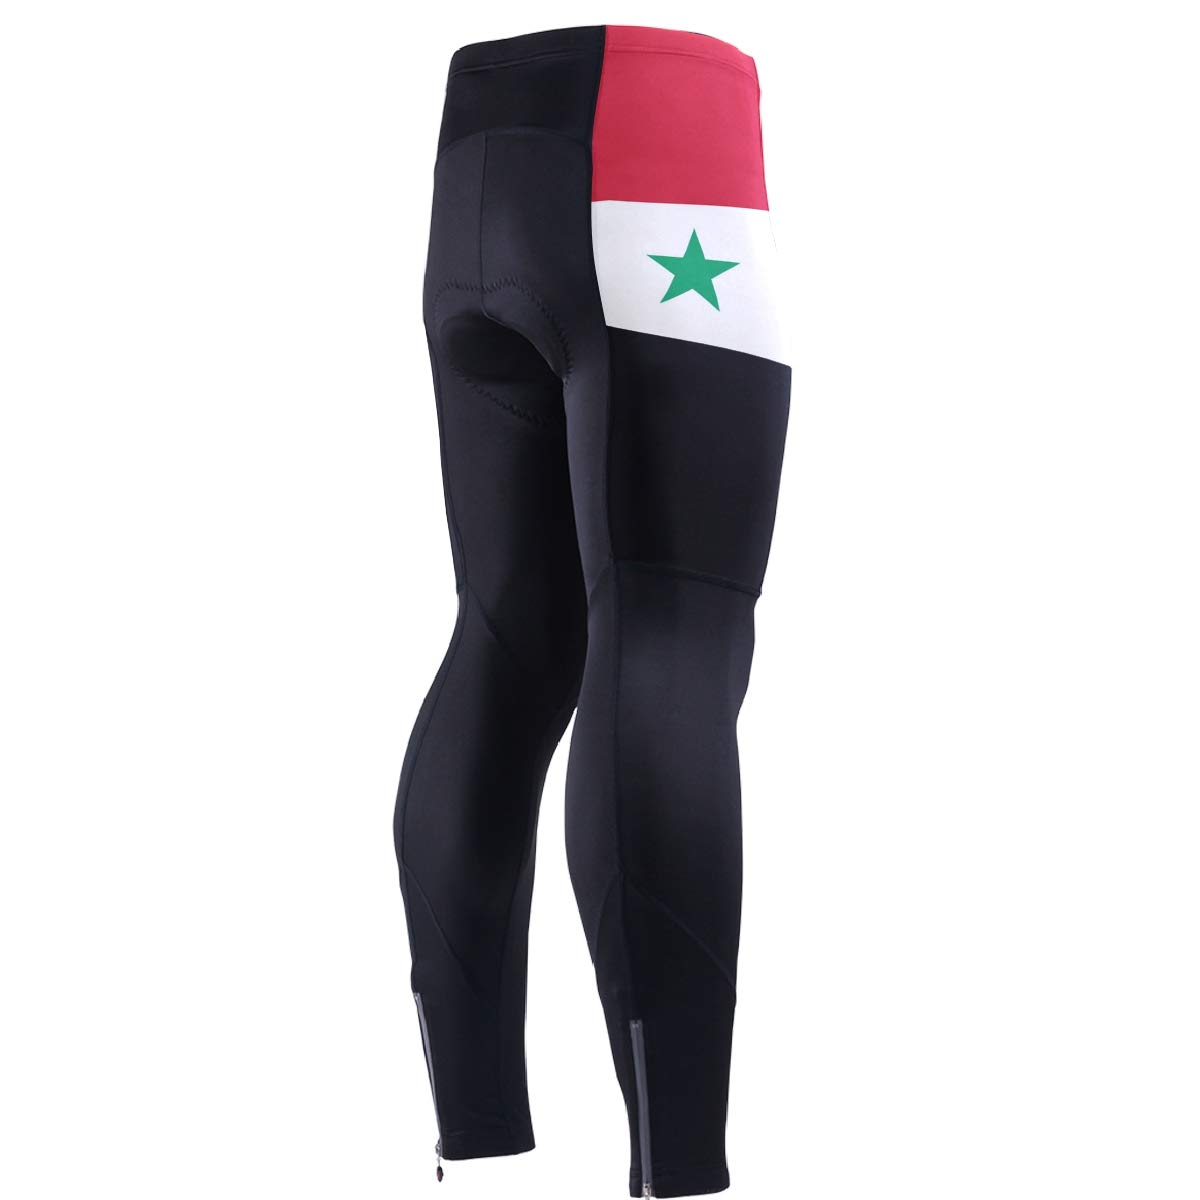 CHINEIN Men's Cycling Jersey Long Sleeve with 3 Rear Pockets Pants Syria Flag